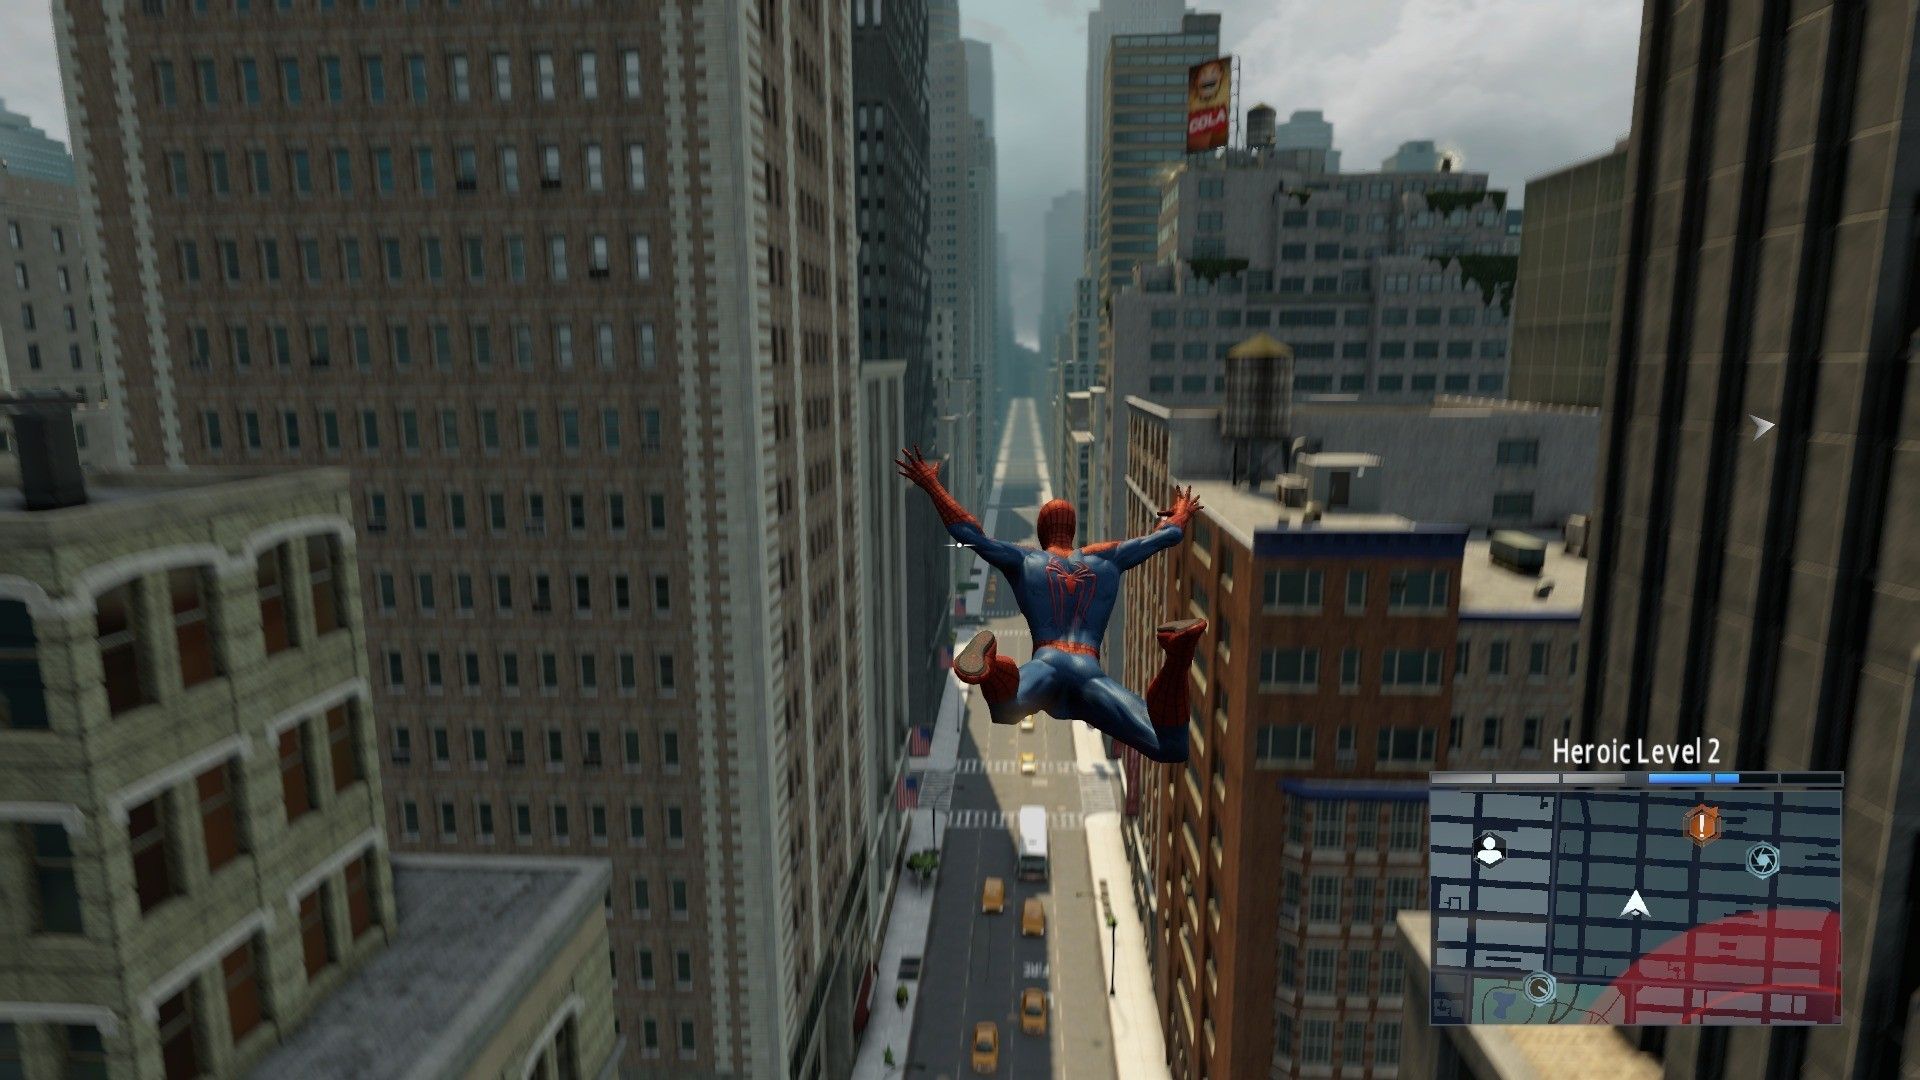 Spider Man 3d Live Wallpaper 5 Ps4 Game Releases That Were Disappointing Ps4 Home